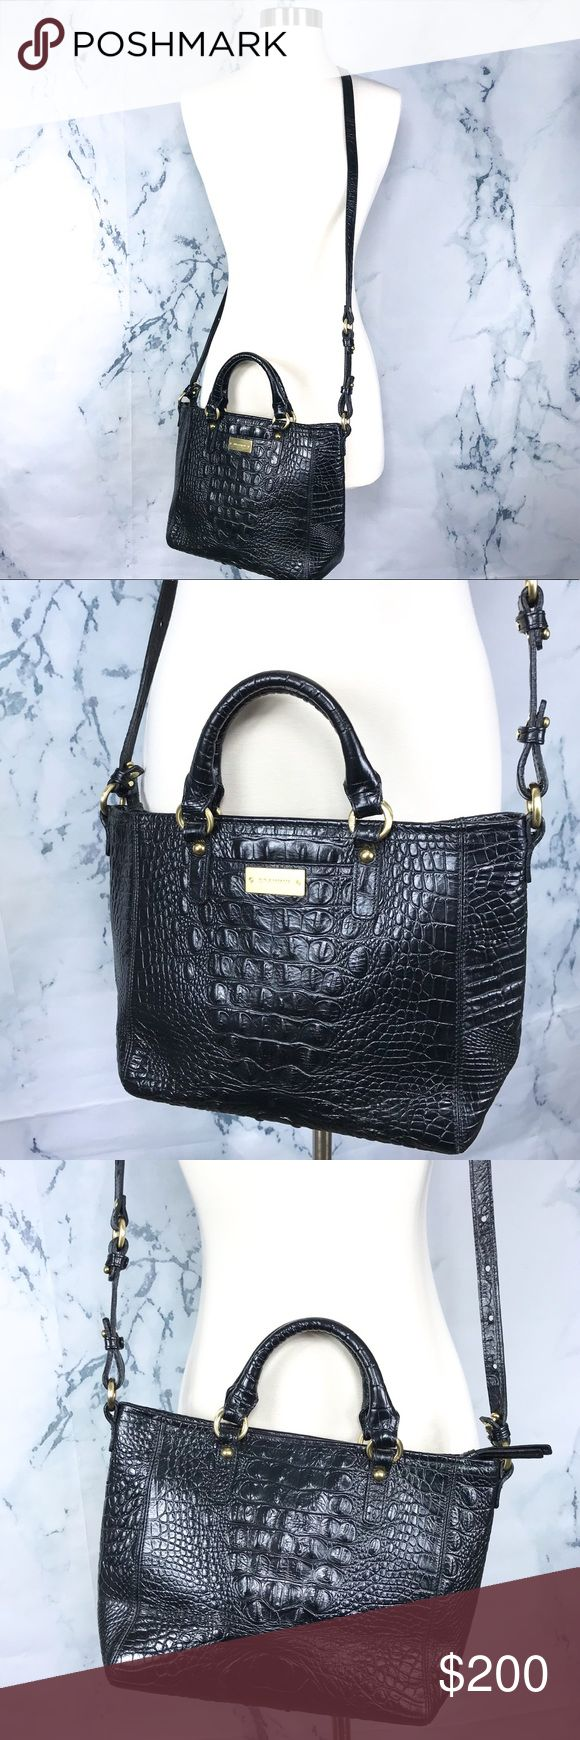 •Brahmin• Crossbody Handbag Sophisticated yet sexy everyday black bag. Comes with detachable crossbody straps. Interior has signs of wear such as debris and pen stains as shown but no holes or tears. Open to offers! With provide measurements soon. Brahmin Bags Crossbody Bags